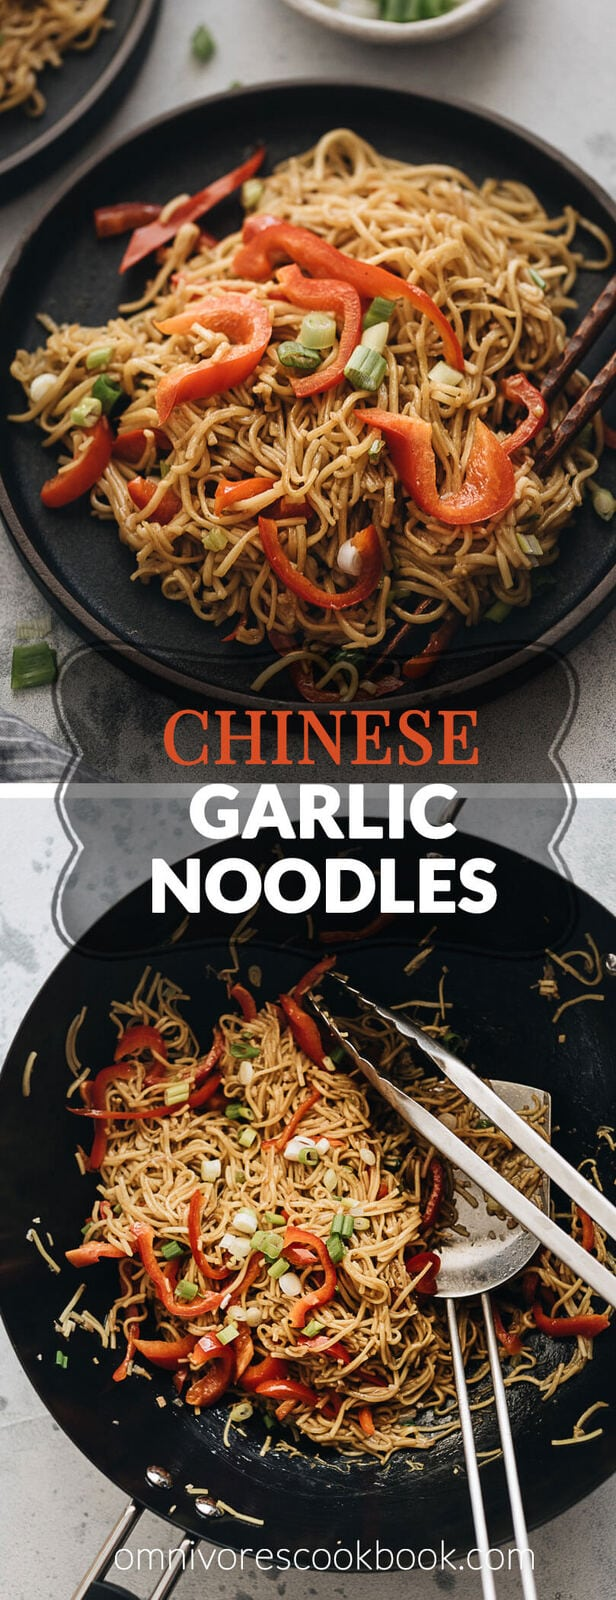 These Chinese-style 15-minute garlic noodles are so fast to prepare and perfect for your weekday dinner. The lightly charred noodles are tossed with a rich, savory, gingery, garlicky sauce and a touch of nutty sesame oil. So simple, yet addictively good! {Vegetarian and Vegan adaptable, gluten-free adaptable} #recipes #asian #easy